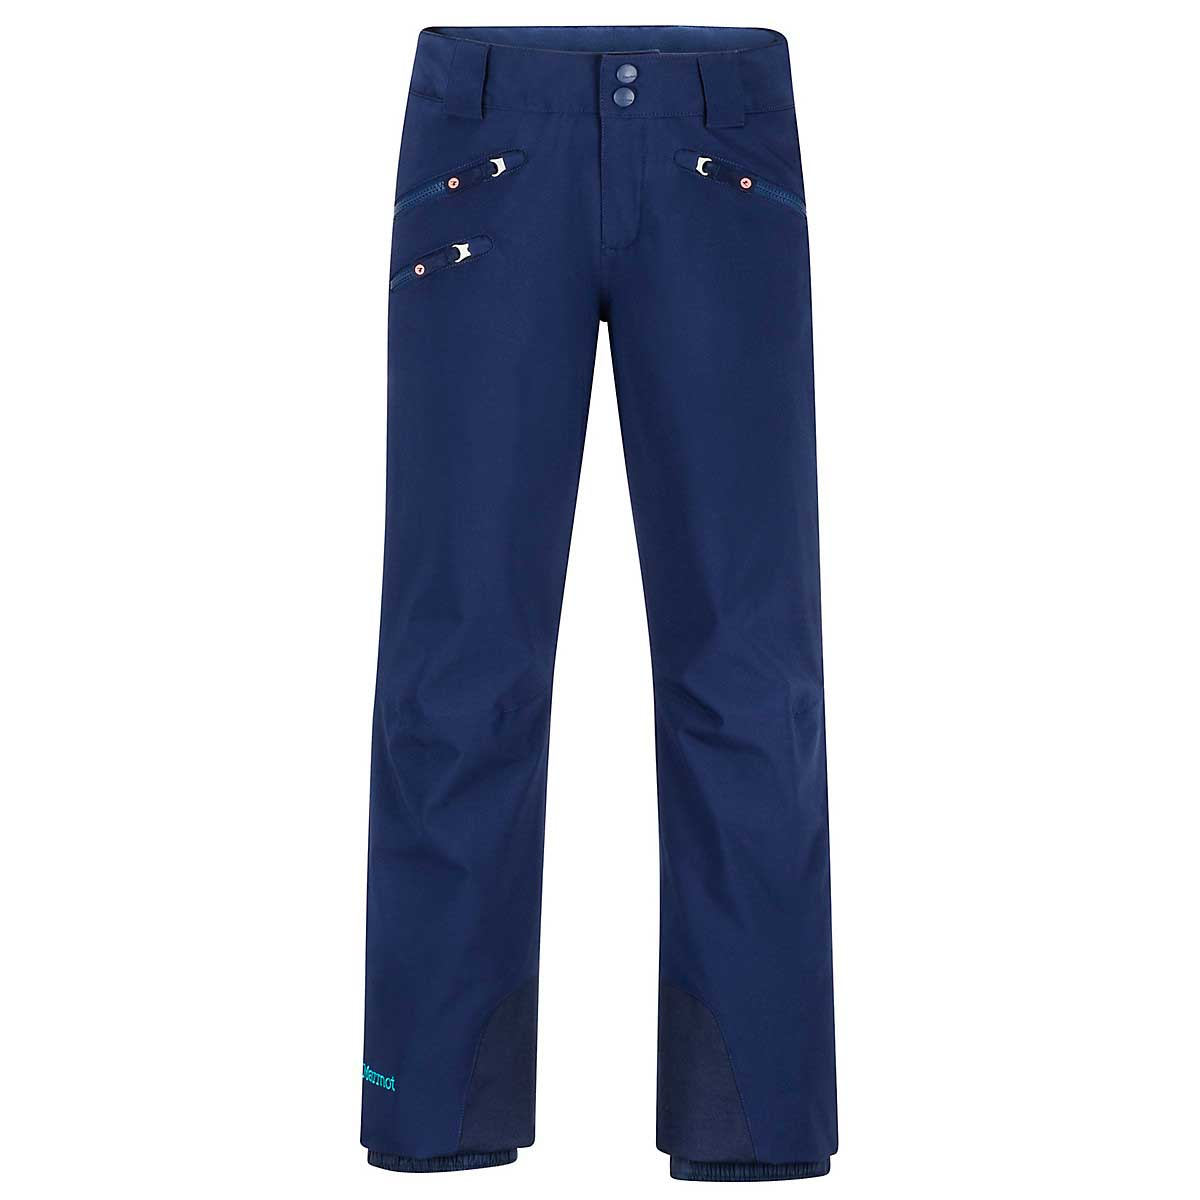 Marmot Girls' Slopestar Pant in Arctic Navy